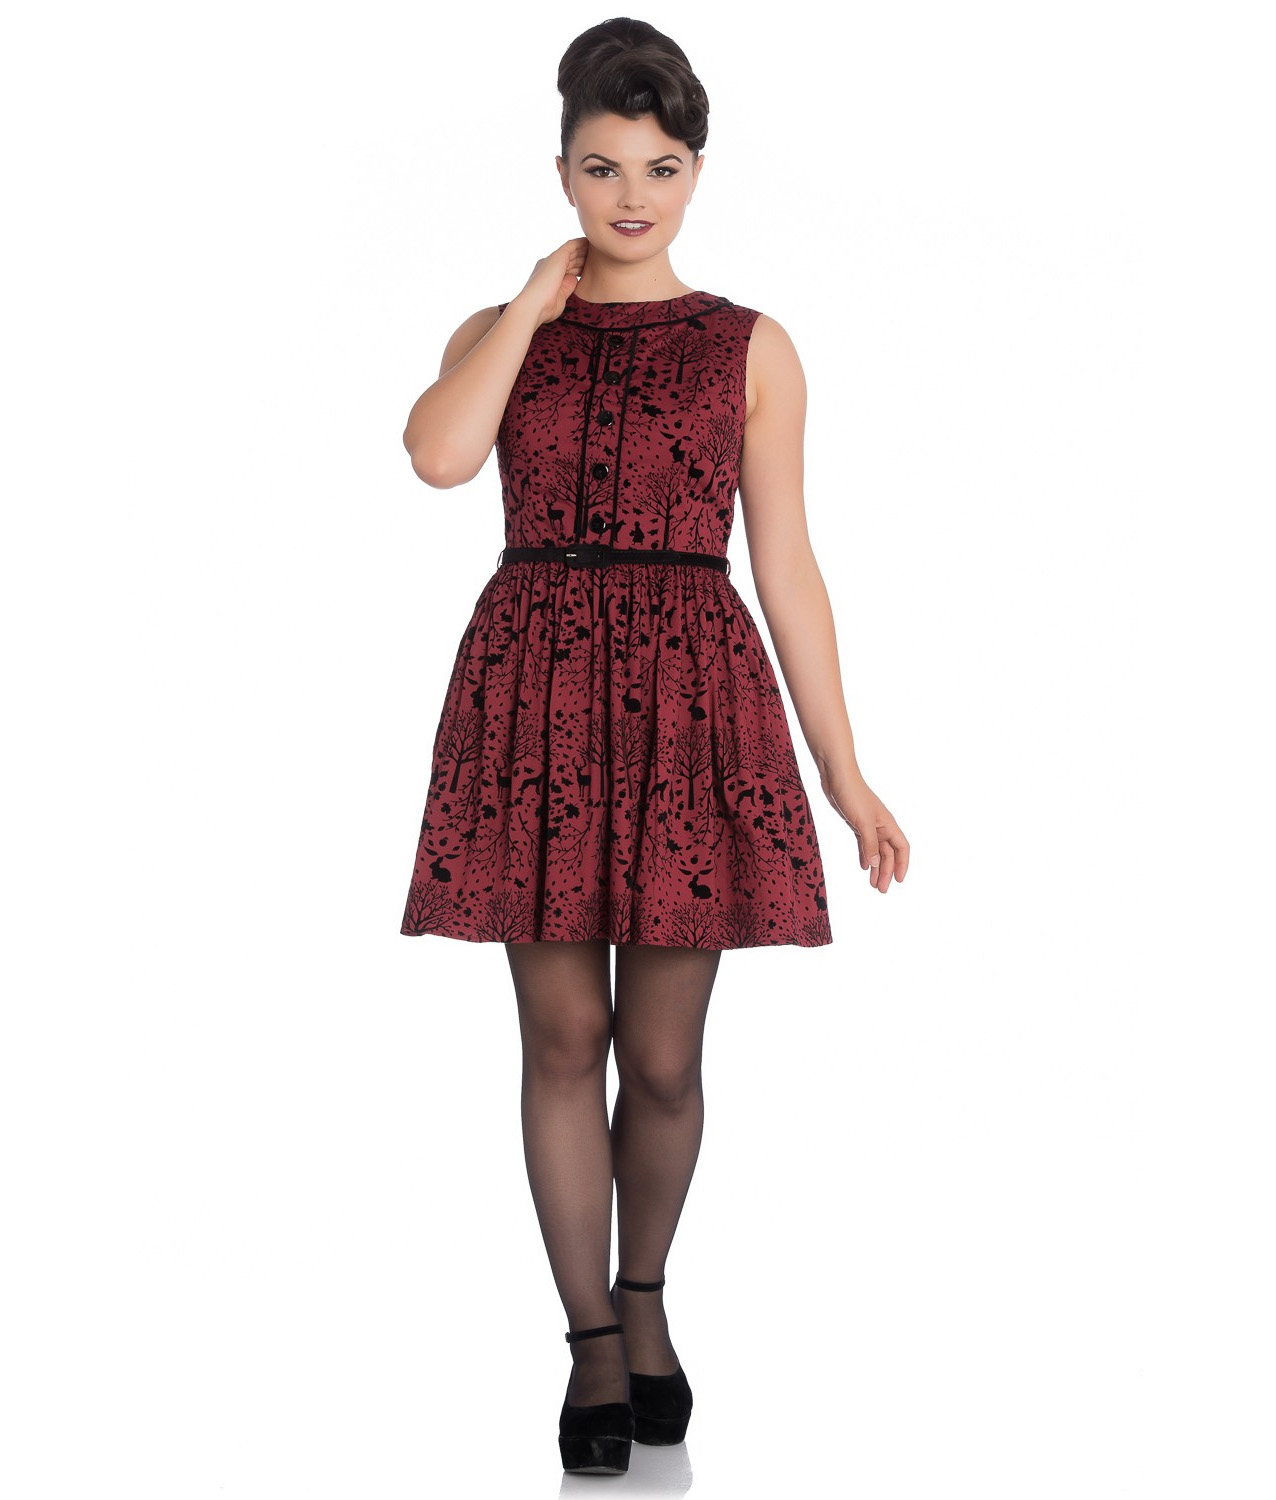 Hell-Bunny-50s-Mini-Skater-Dress-Woodland-Trees-SHERWOOD-Black-Red-All-Sizes thumbnail 7